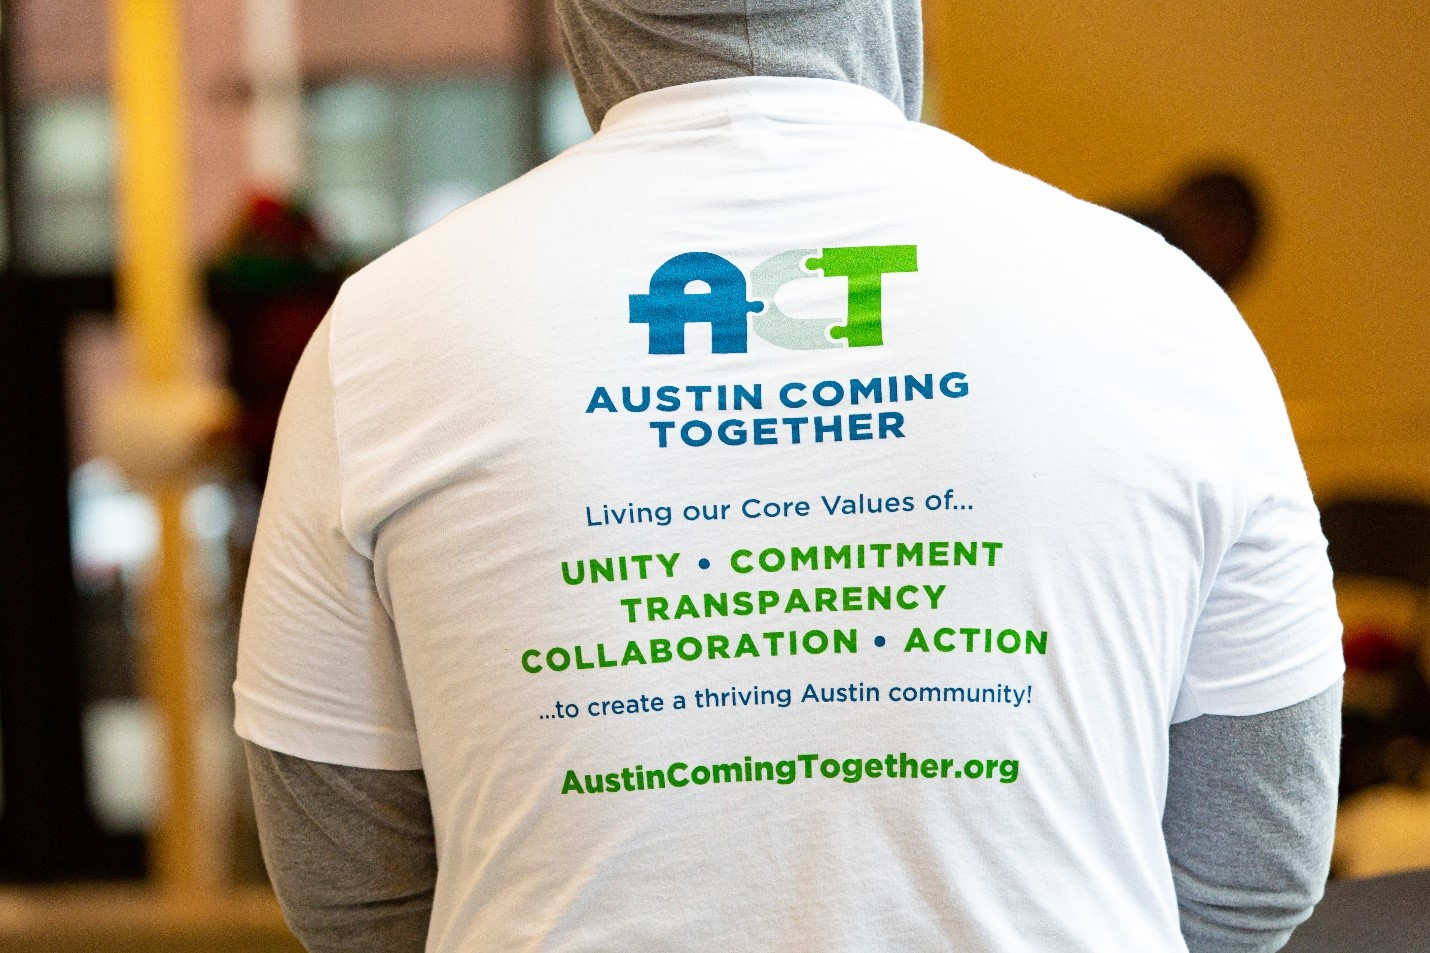 Austin Coming Together tshirt